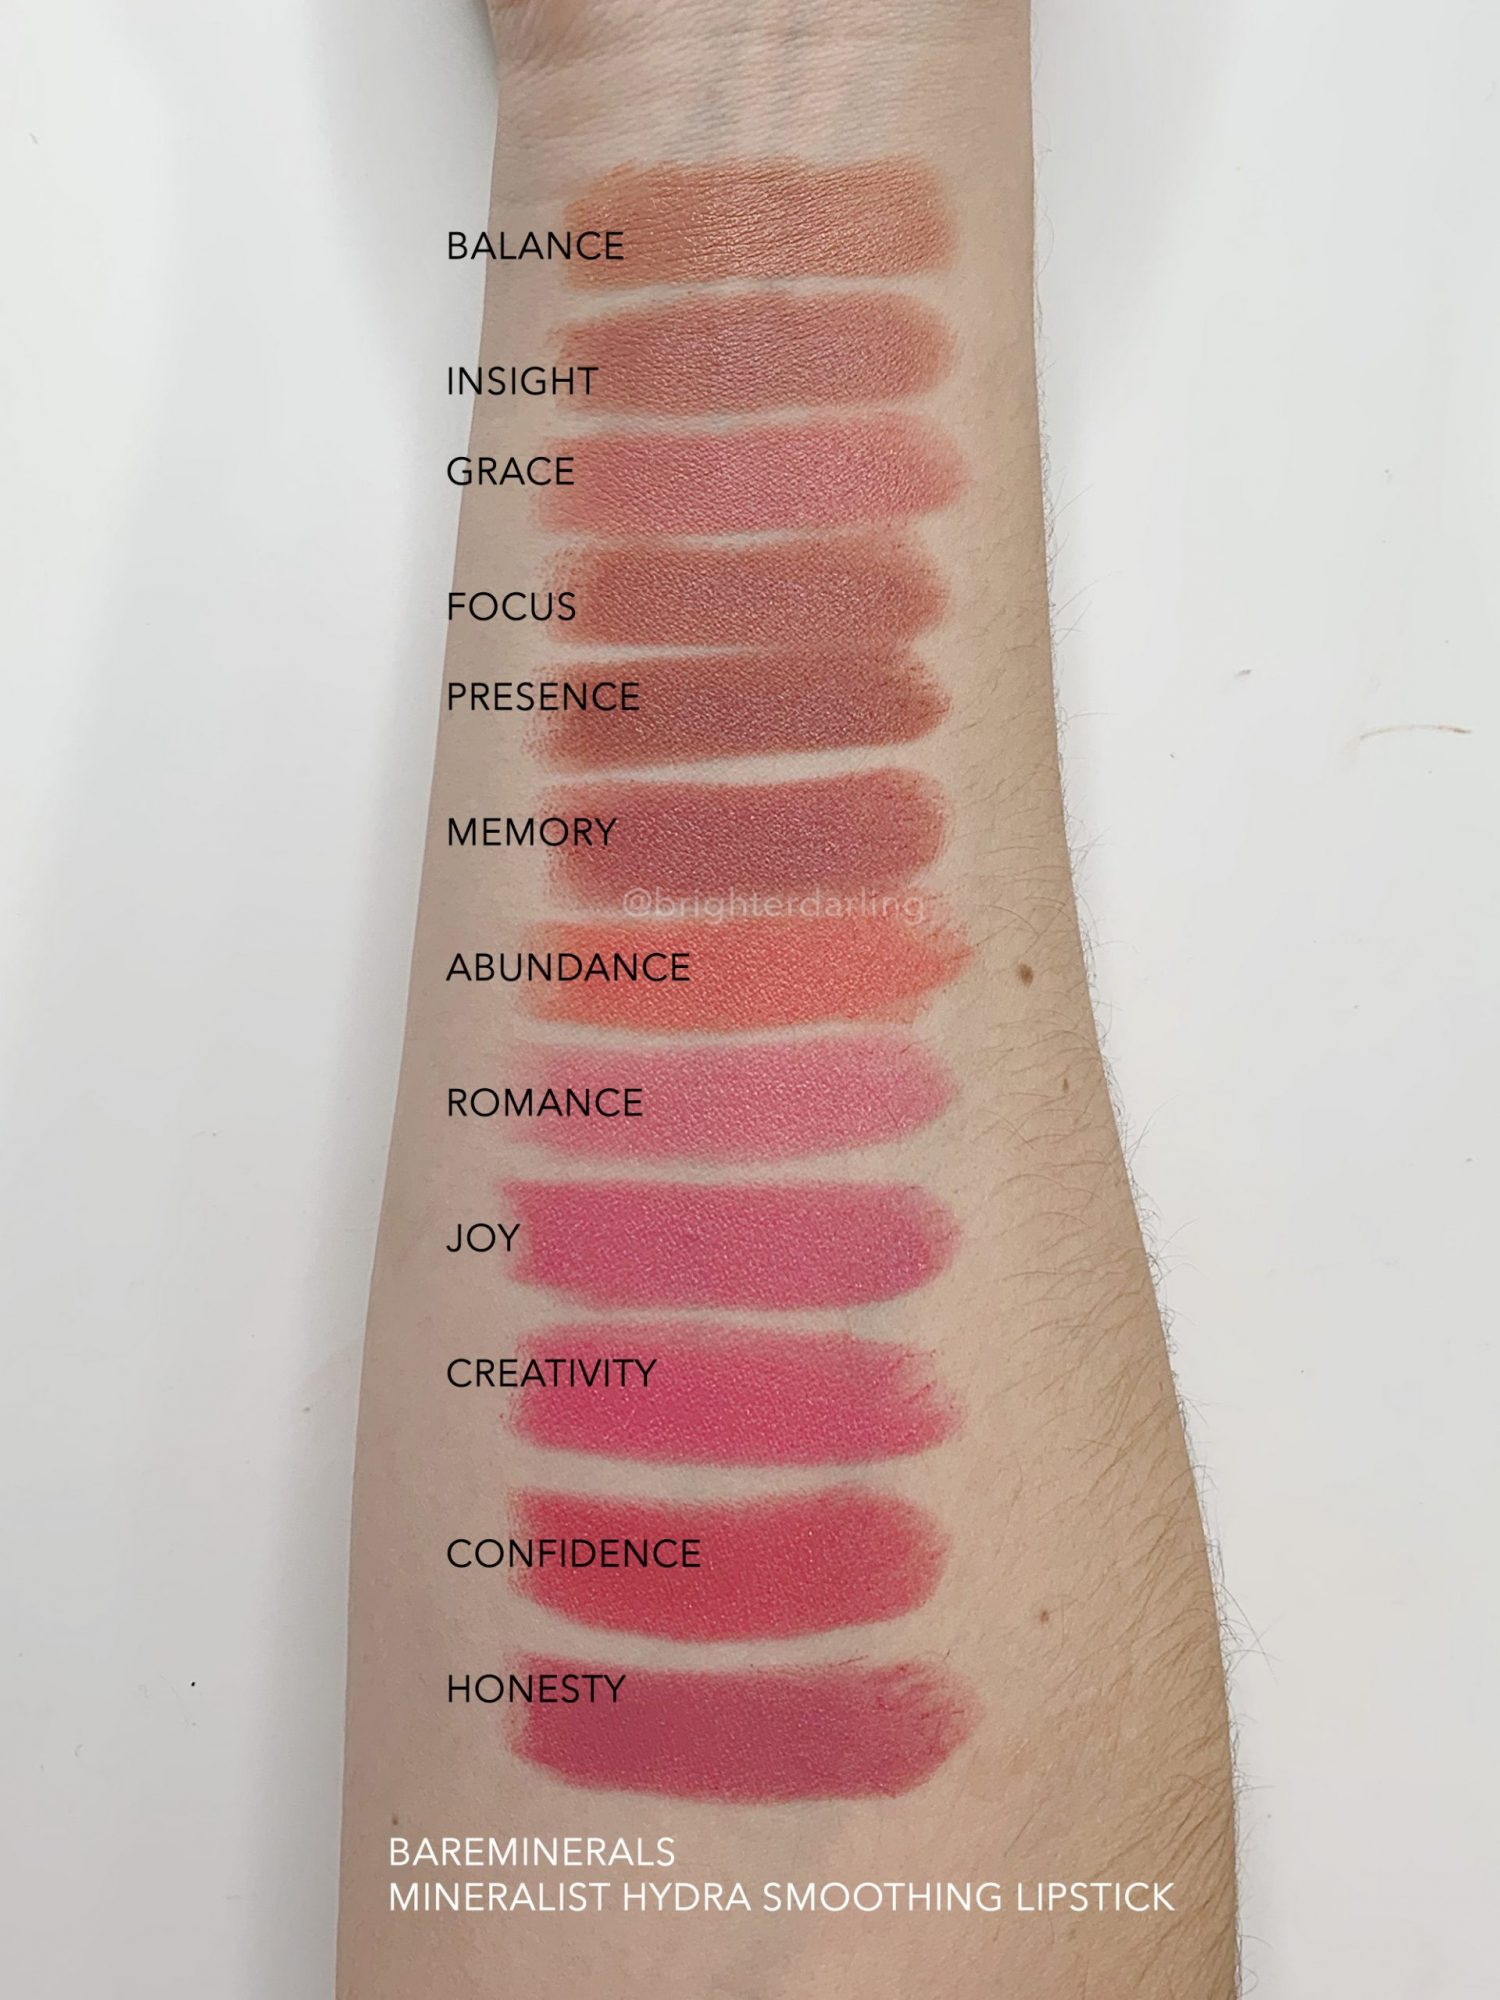 BAREMINERALS MINERALIST HYDRA SMOOTHING LIPSTICK SWATCHES 1 | Brighter Darling Blog